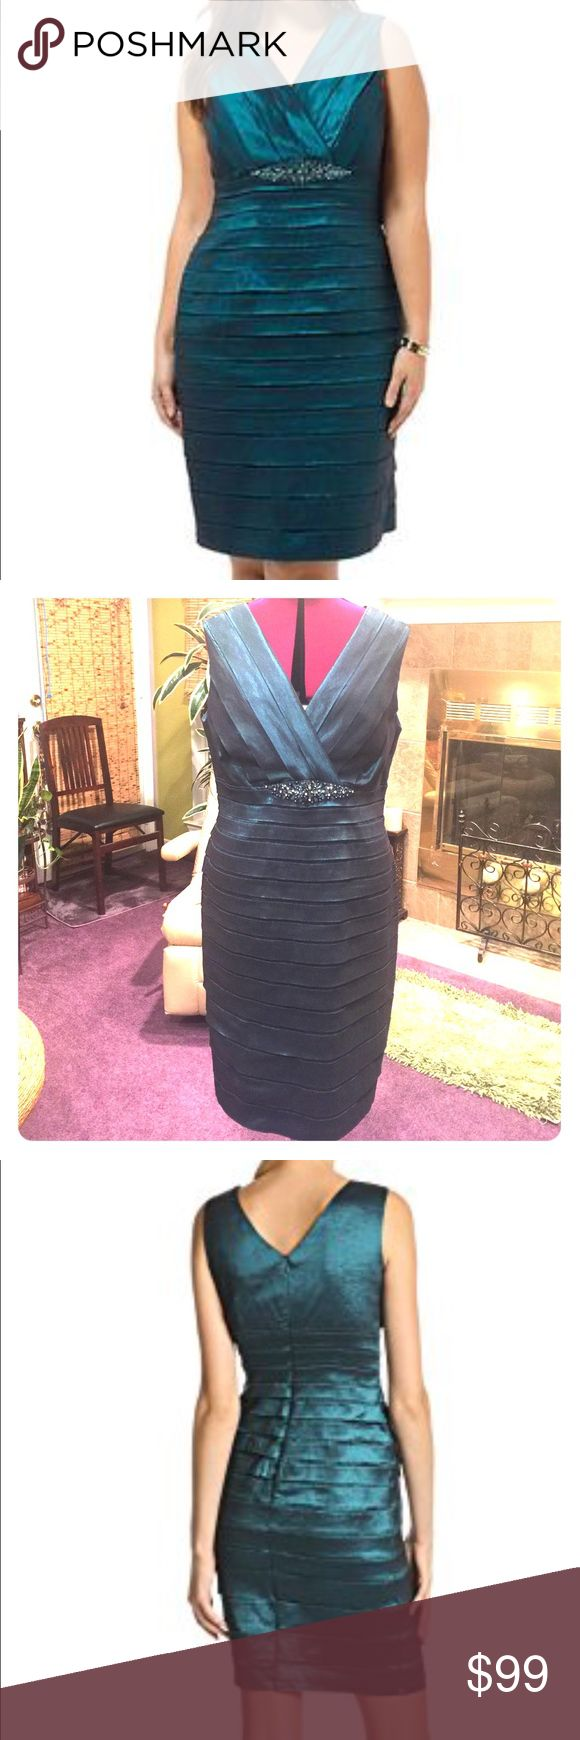 NWOT Jessica Howard 14W shutter pleat dress NWOT Jessica Howard 14W shutter pleat teal special occasion dress. Very flattering. Never worn except for me to try it on & screech, OMG, this fits perfectly & looks soooooo sexy!  Alas, I took the tags off and then the special event I bought it for didn't happen. Still iffy on selling such a perfect dress but I might be willing to let it go... ❤️❤️❤️ Jessica Howard Dresses